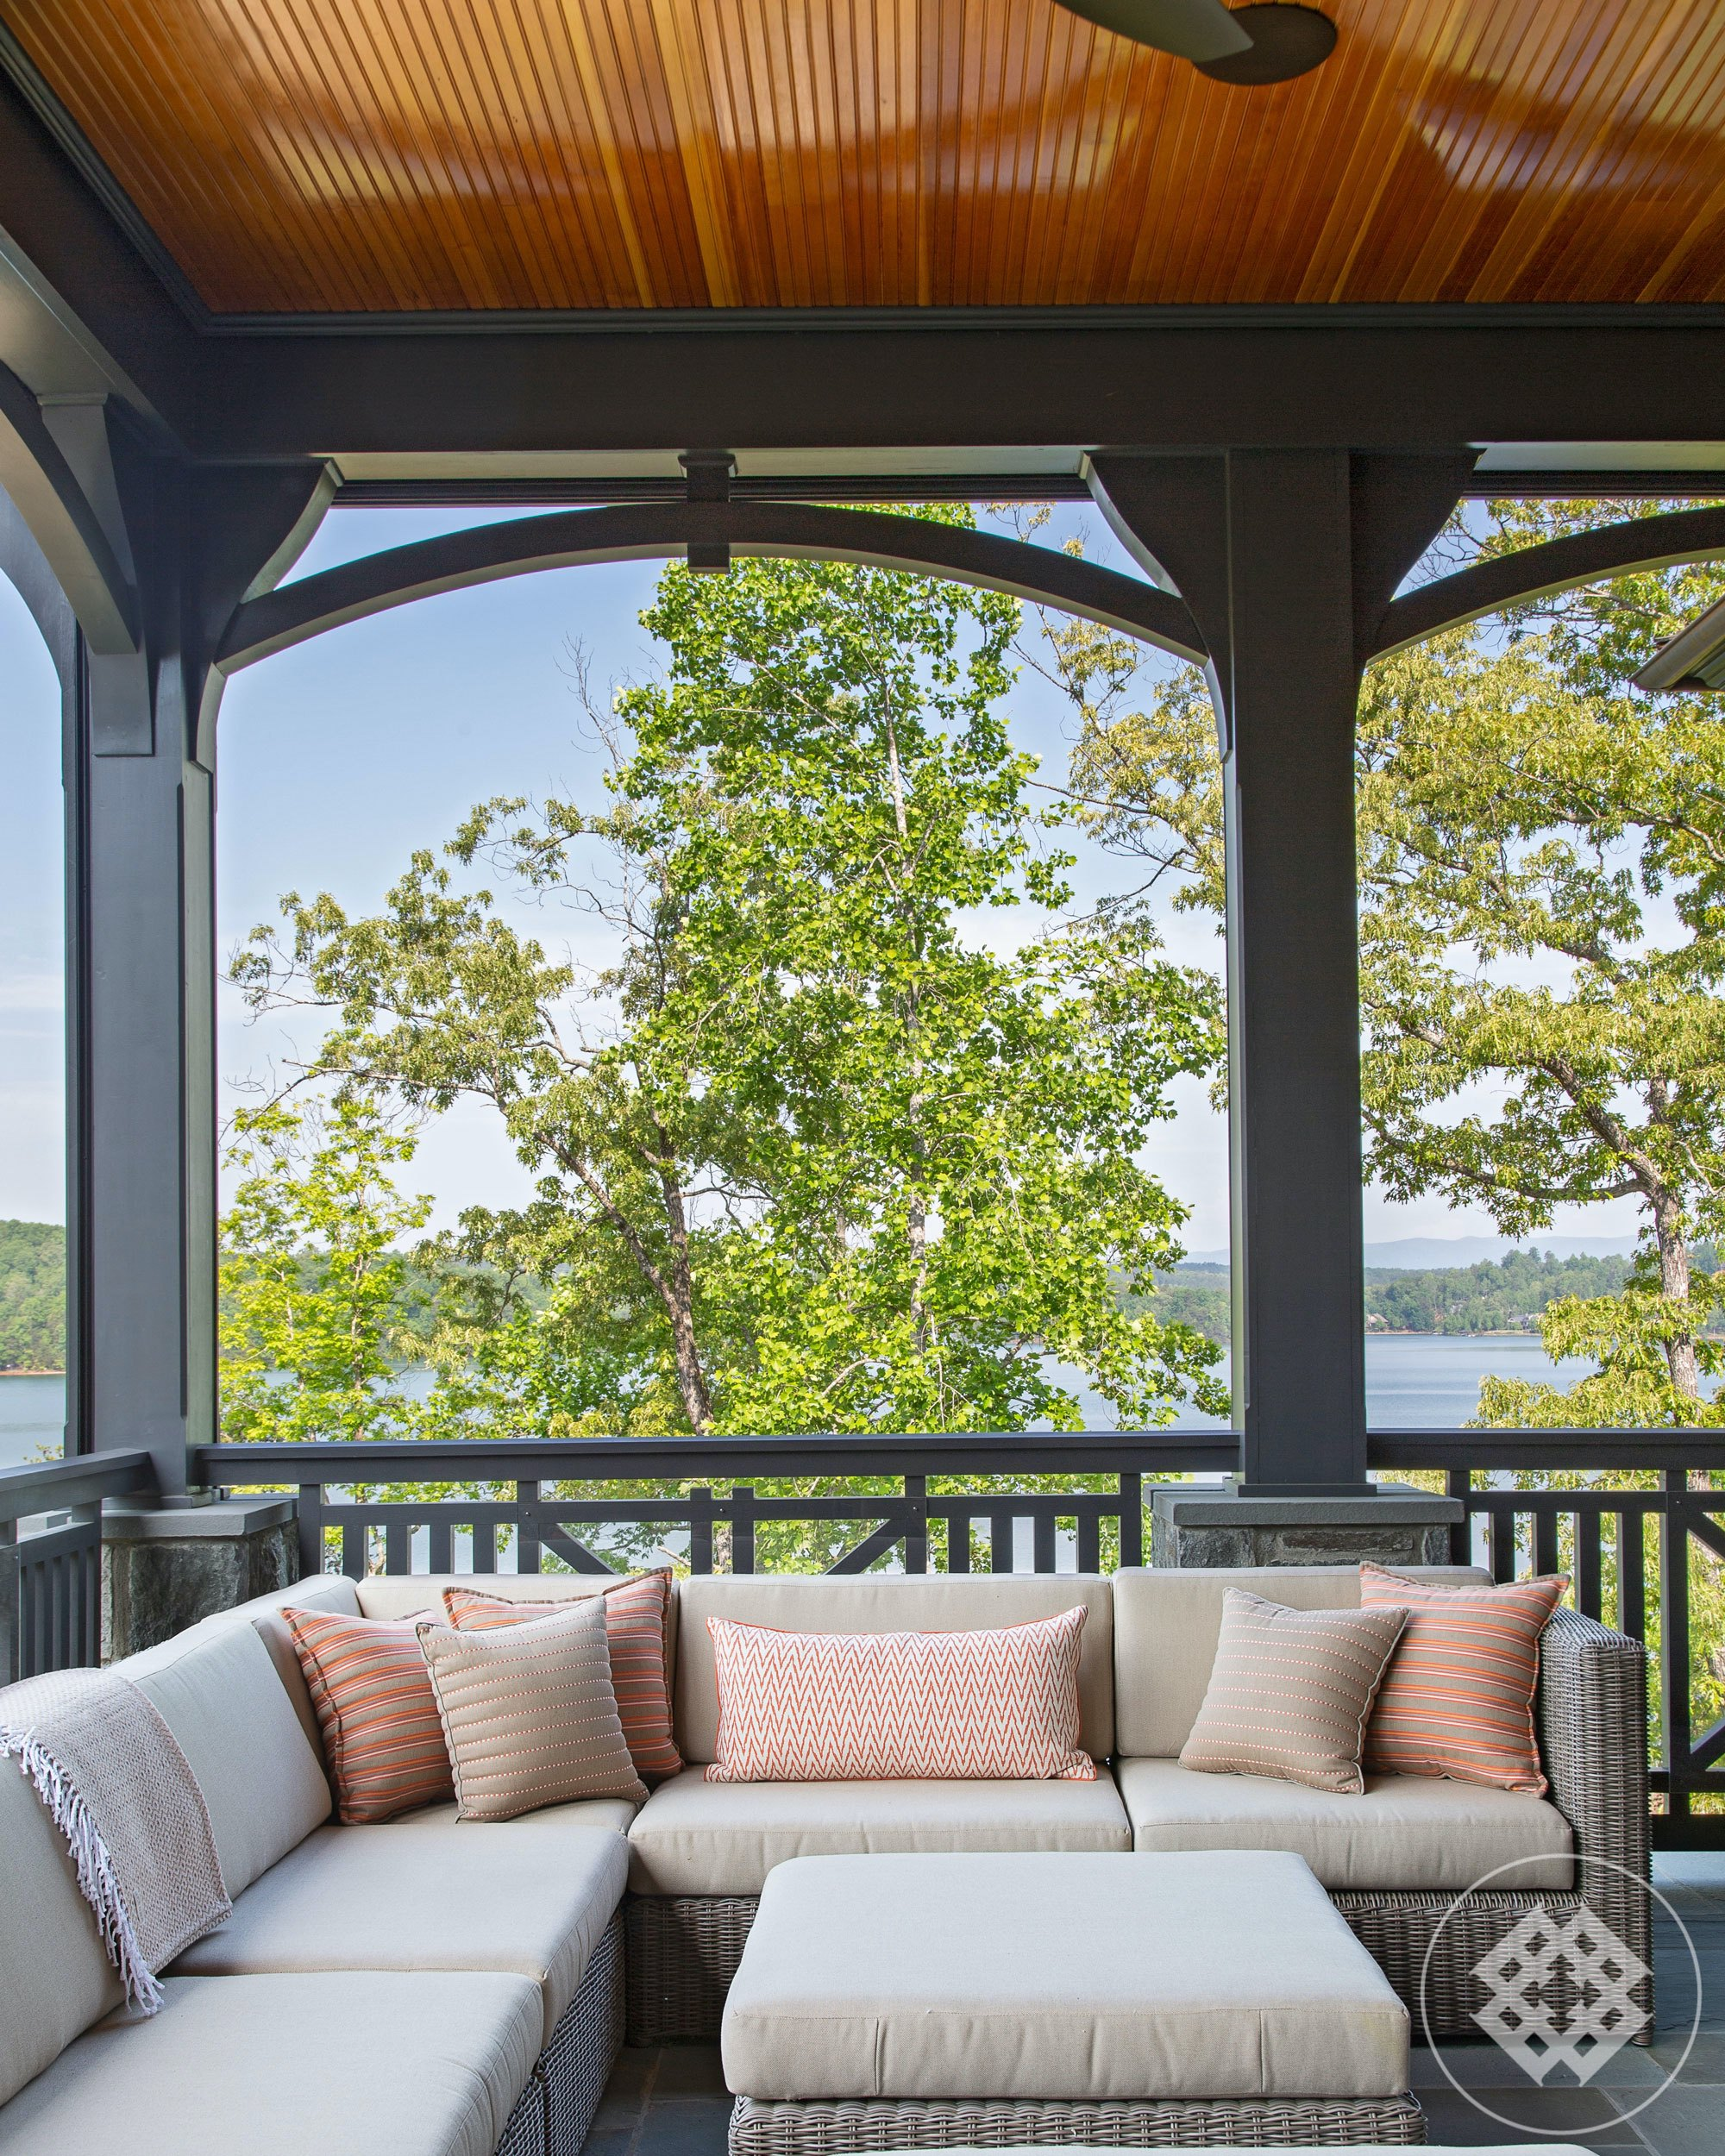 kkl-wicker-outdoor-seating-overlooking-lake-keowee.jpg